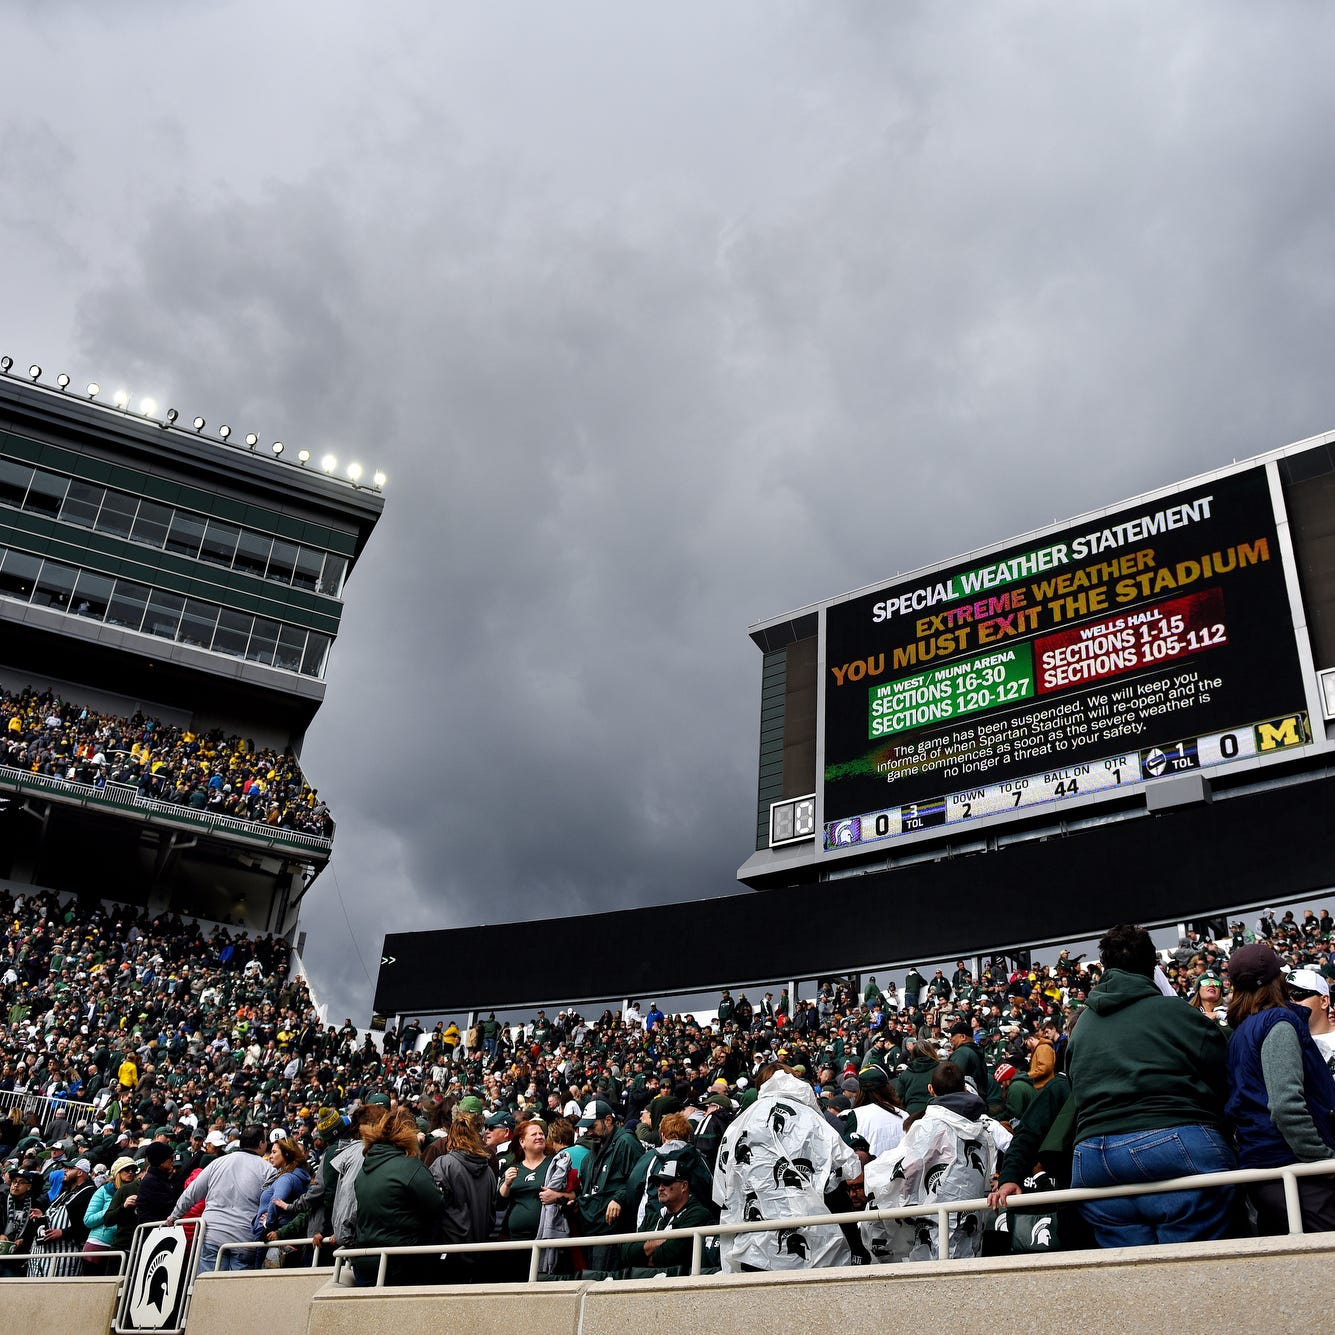 Michigan State-Michigan football game resumes after weather delay at Spartan Stadium